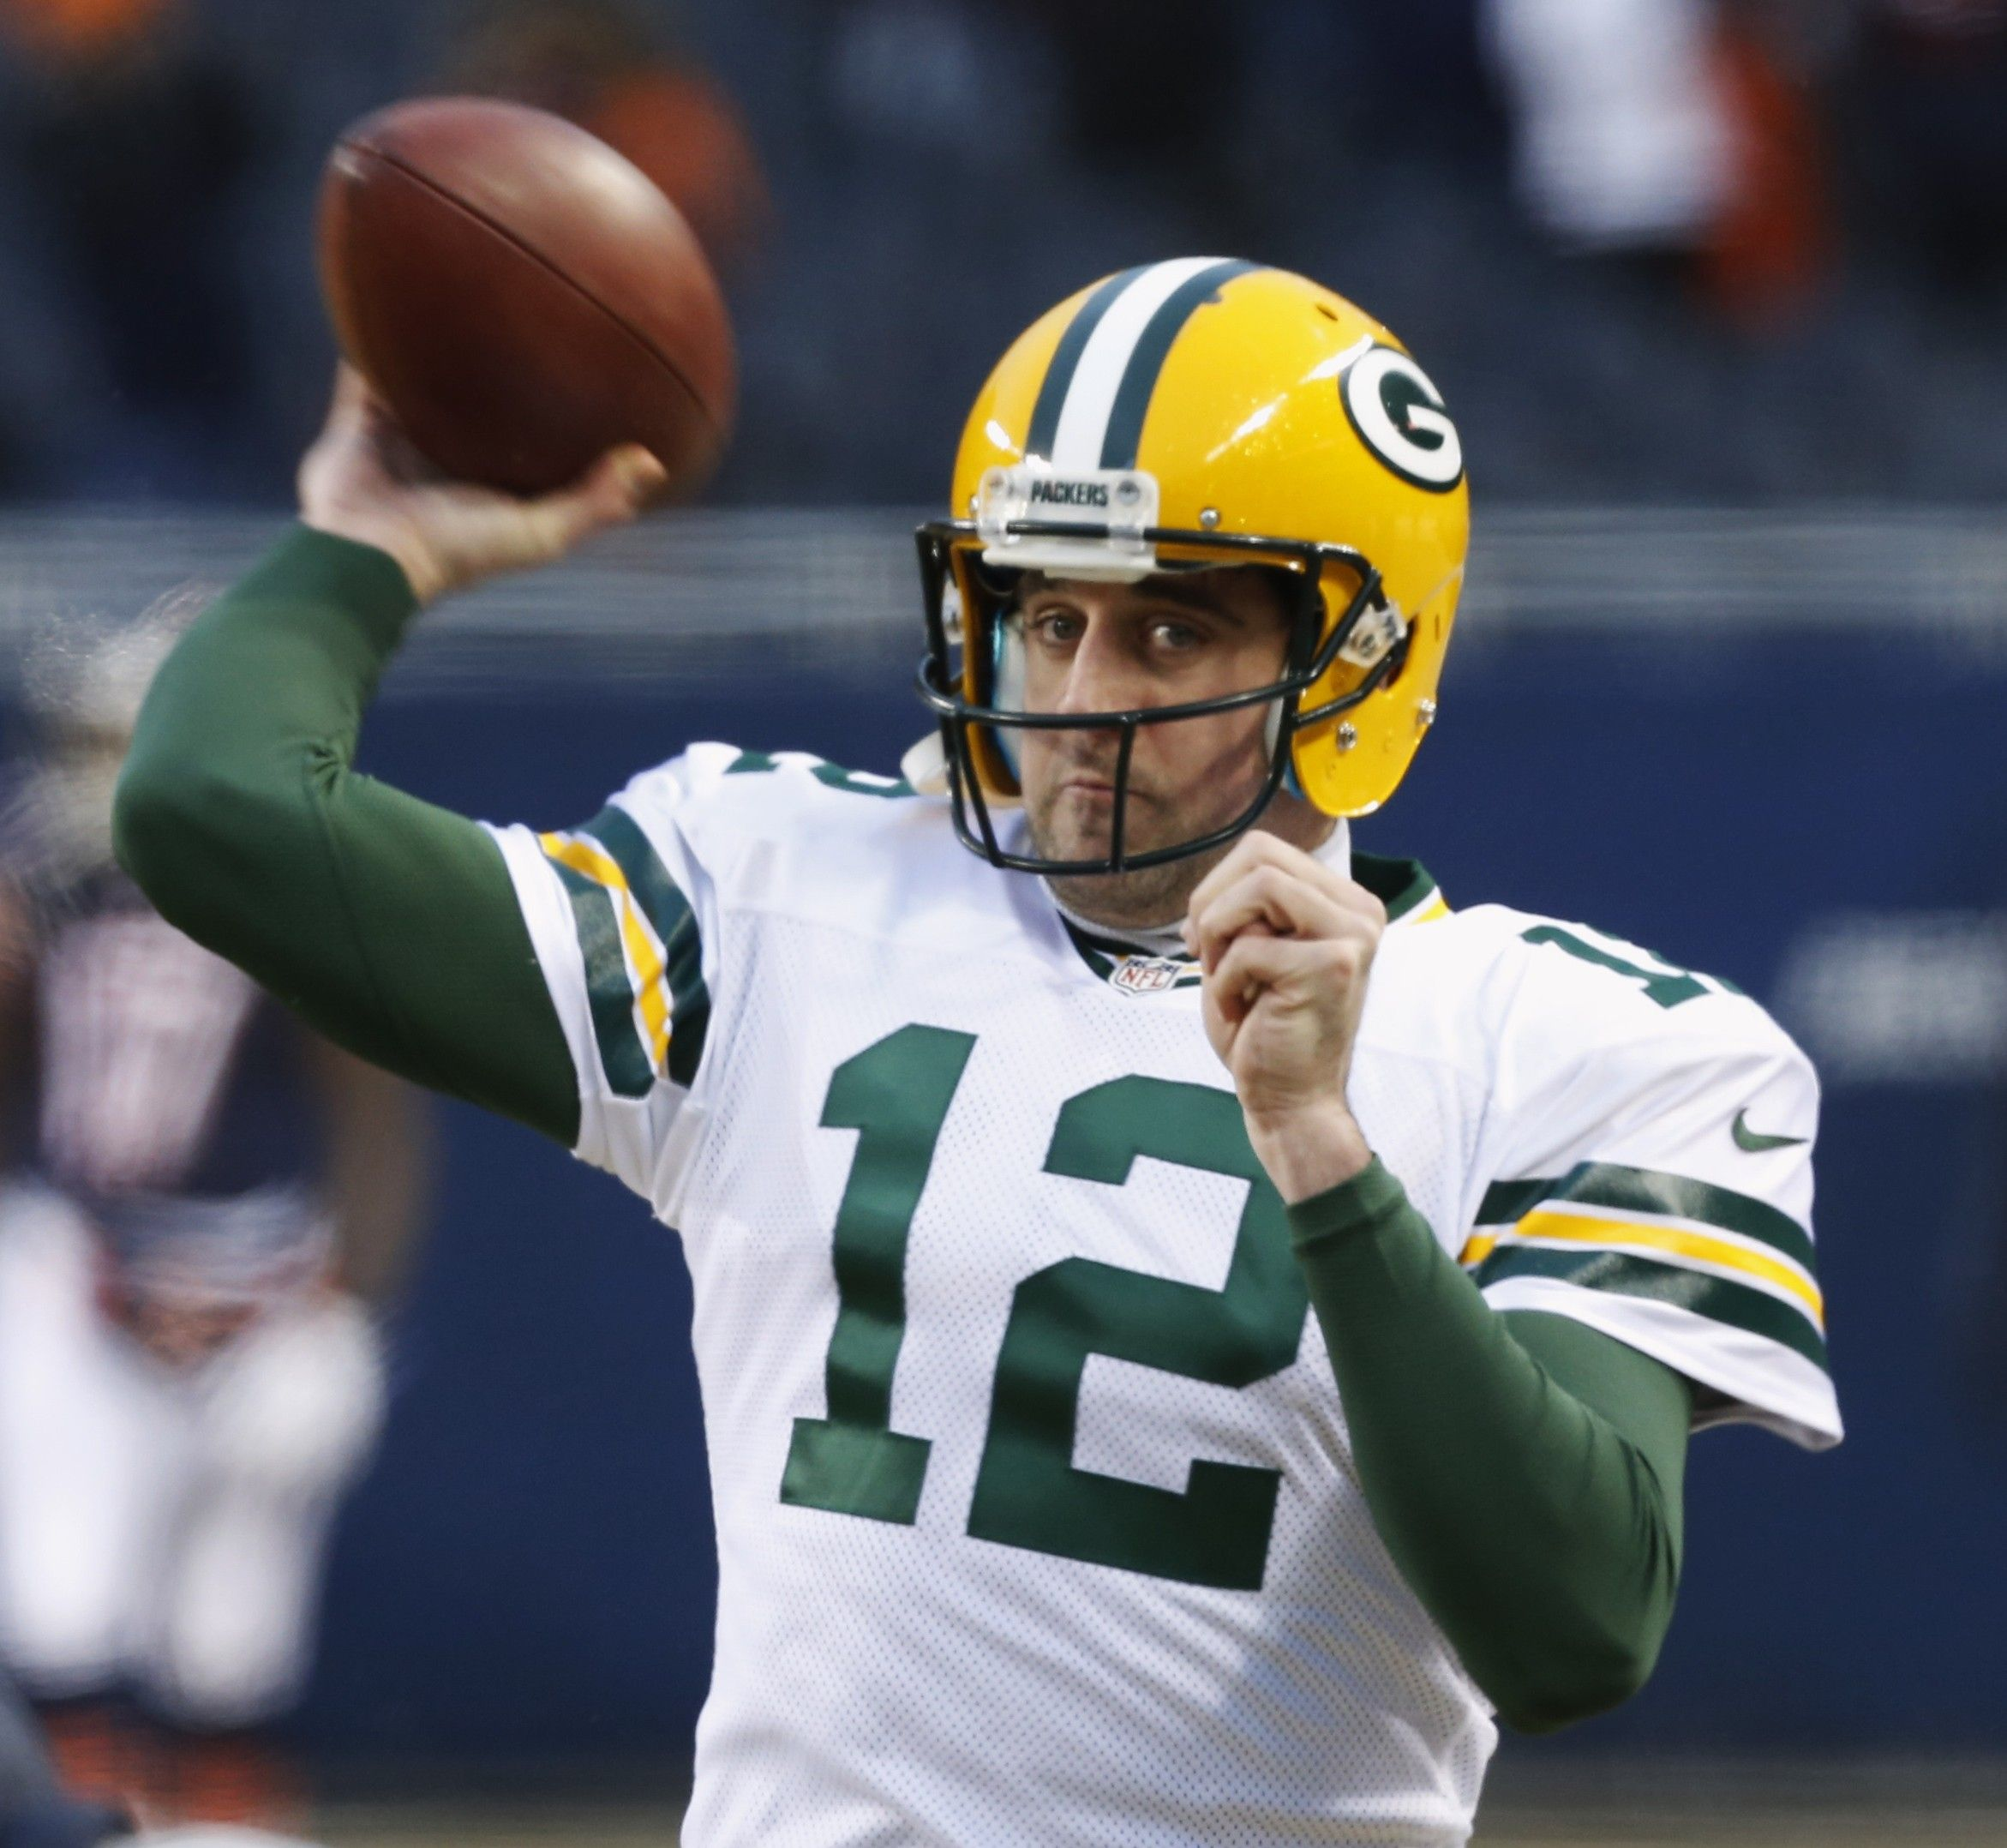 Go Pack! Quarterback Aaron Rodgers is doing yoga - getting his Zen back!